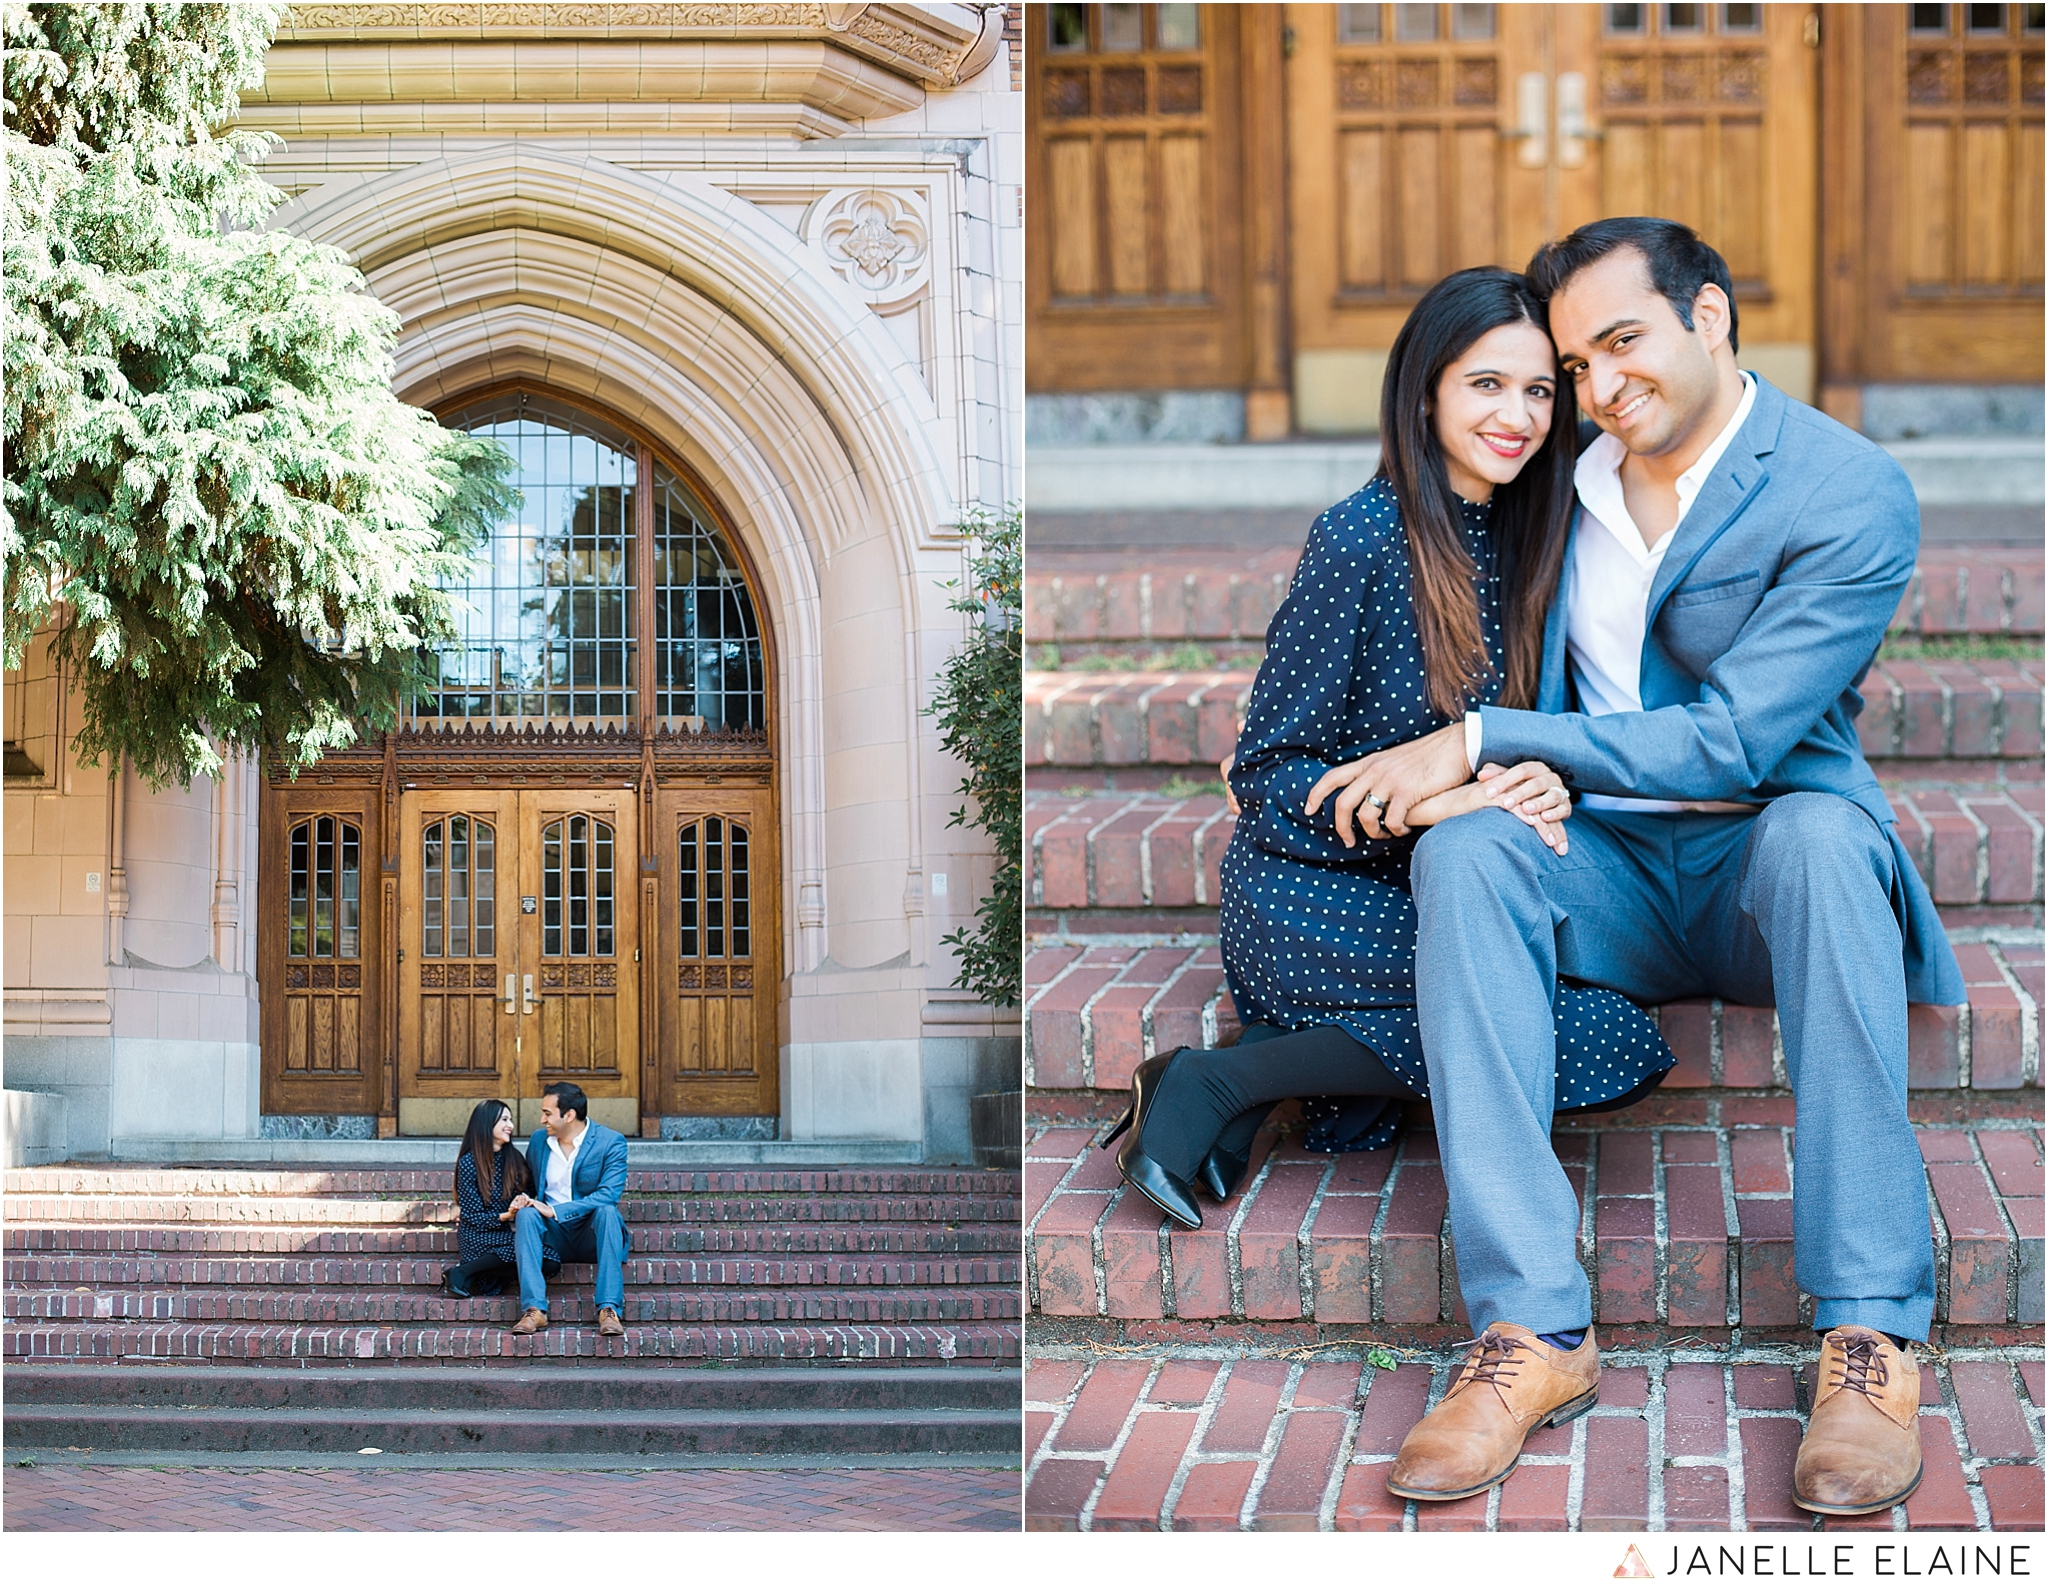 janelle elaine photography-zain and umema-seattle-uw-red square-engagement-photographer-18.jpg